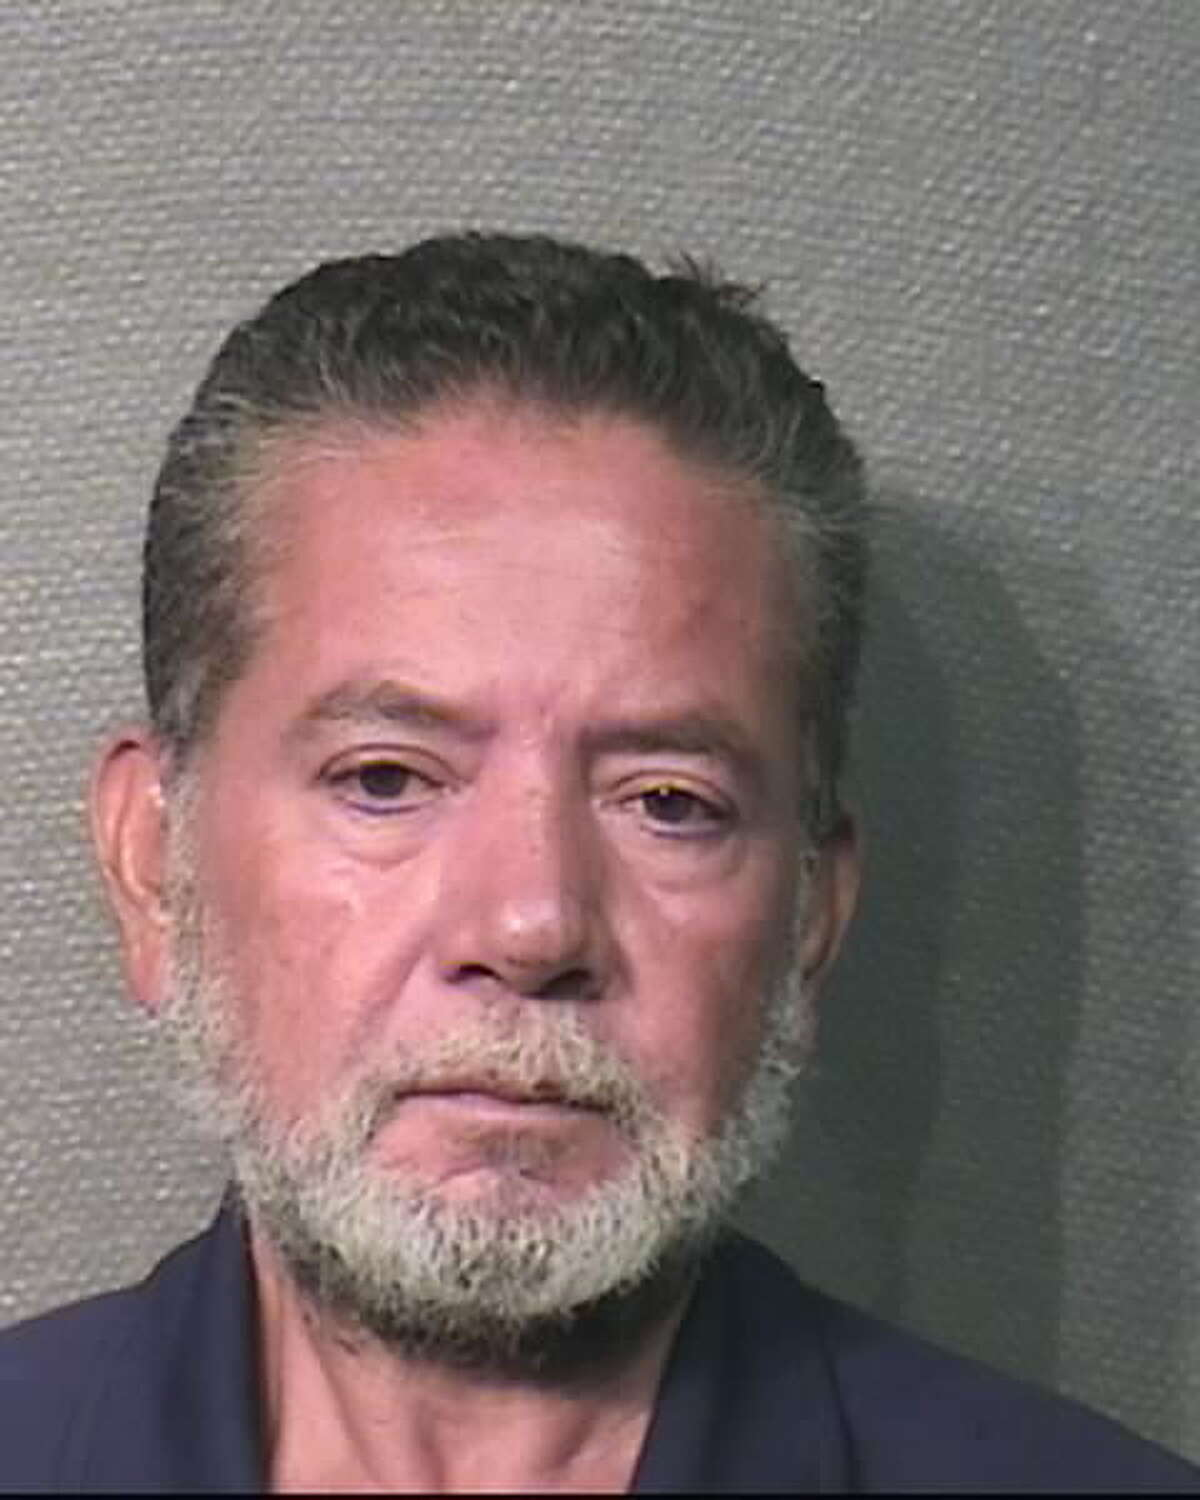 Miguel Barrera was arrested in September 2018 on athird charge of DWI.